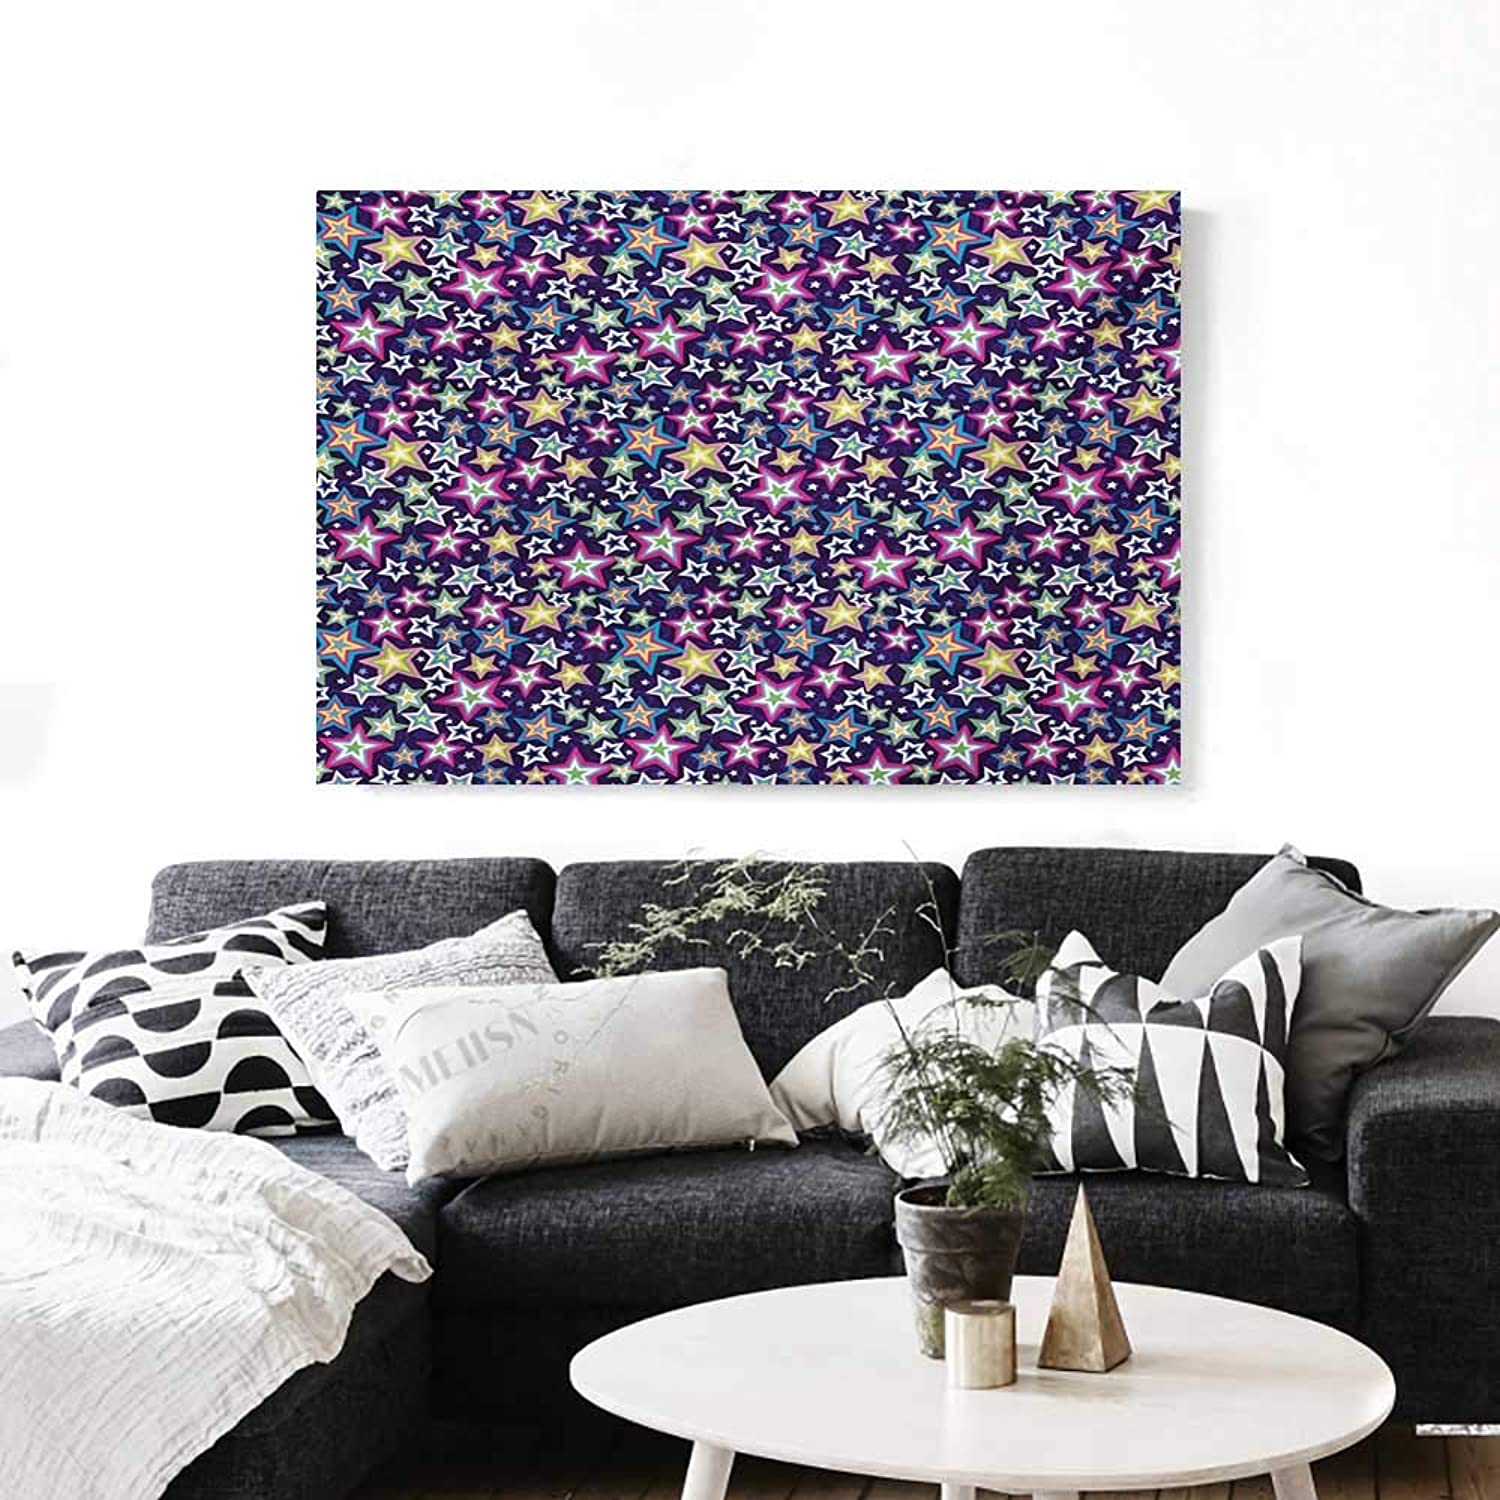 BlountDecor Star Canvas Wall Art for Bedroom Home Decorations Multicolord Stars in Different Shapes Space Universe Themed Image Abstract Background Art Stickers 48 x32  Multicolor